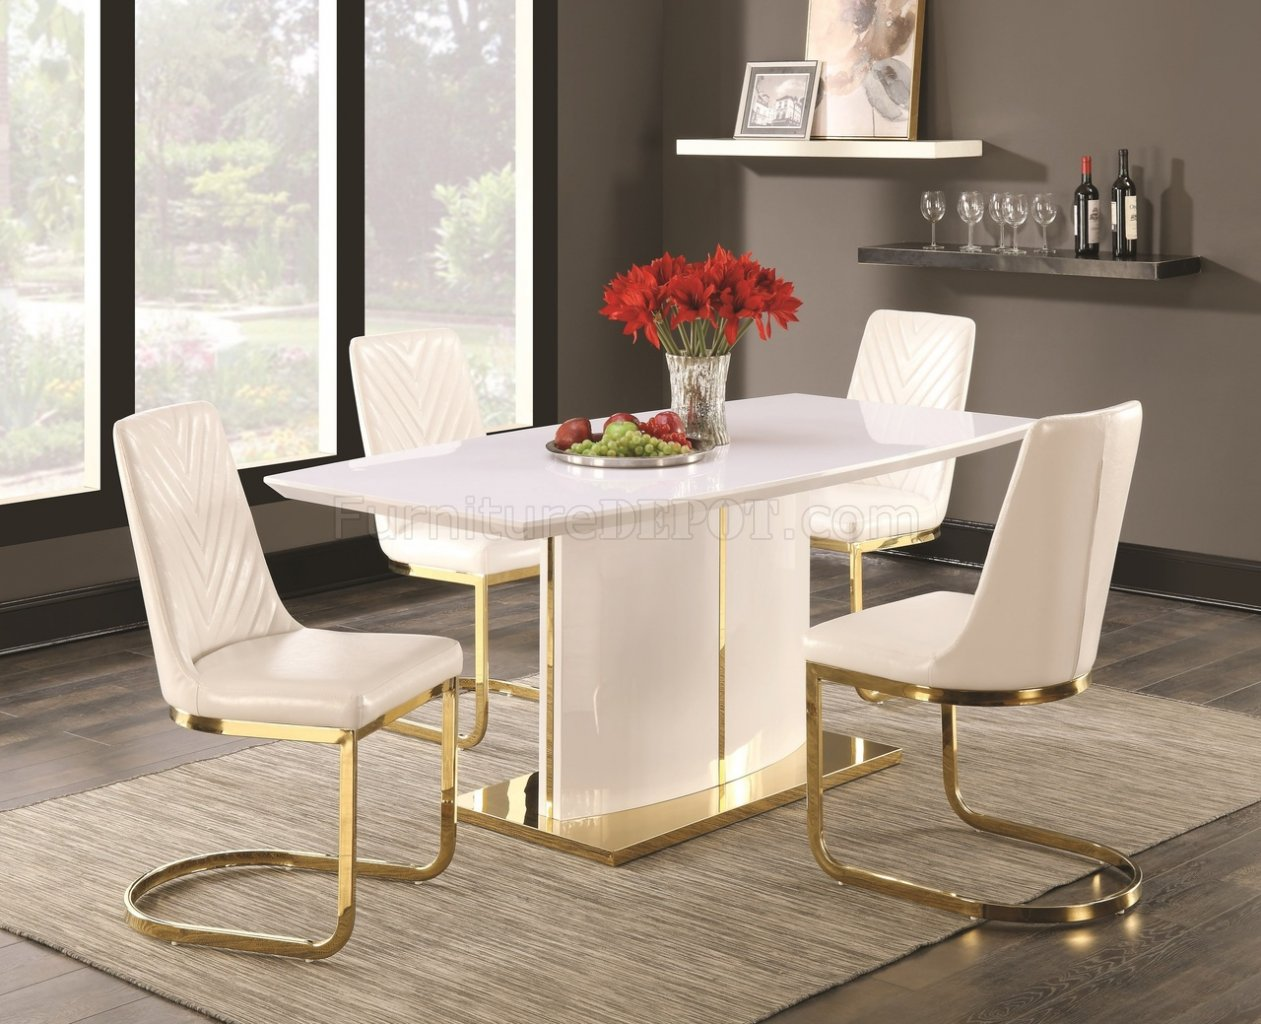 bedroom chair table set red tub homebase cornelia dining 5pc 106711 high gloss white by